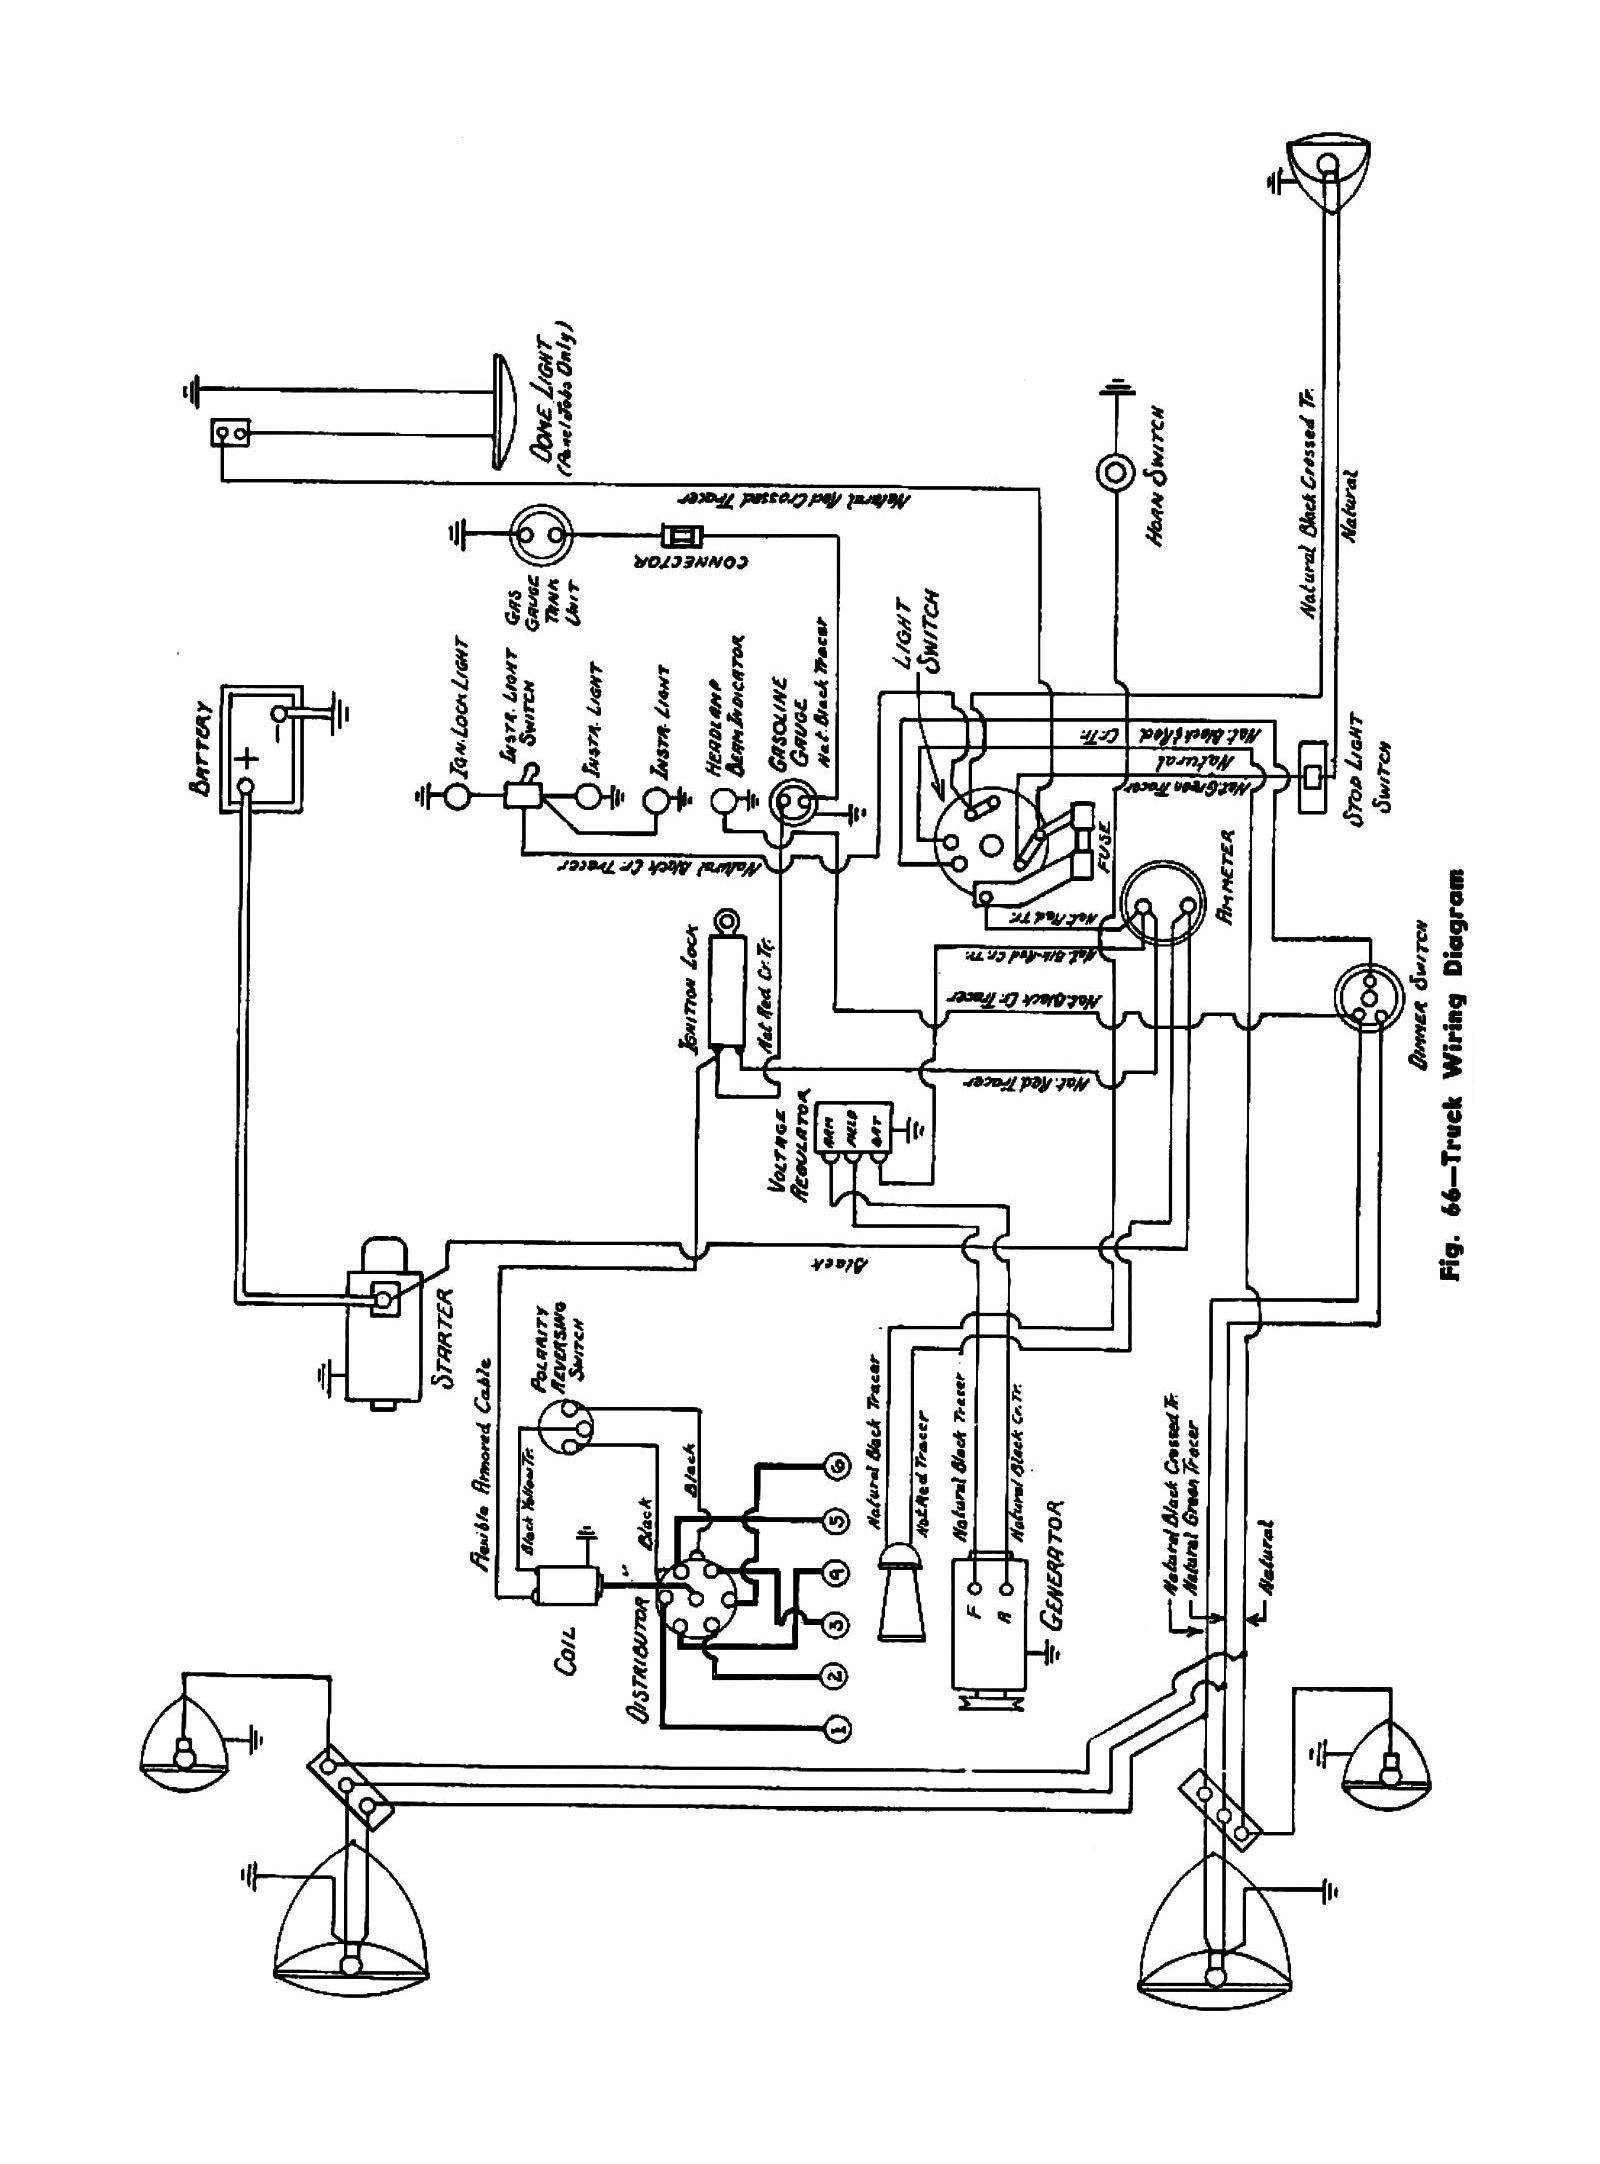 2 on 1992 Buick Lesabre Radio Wiring Diagram